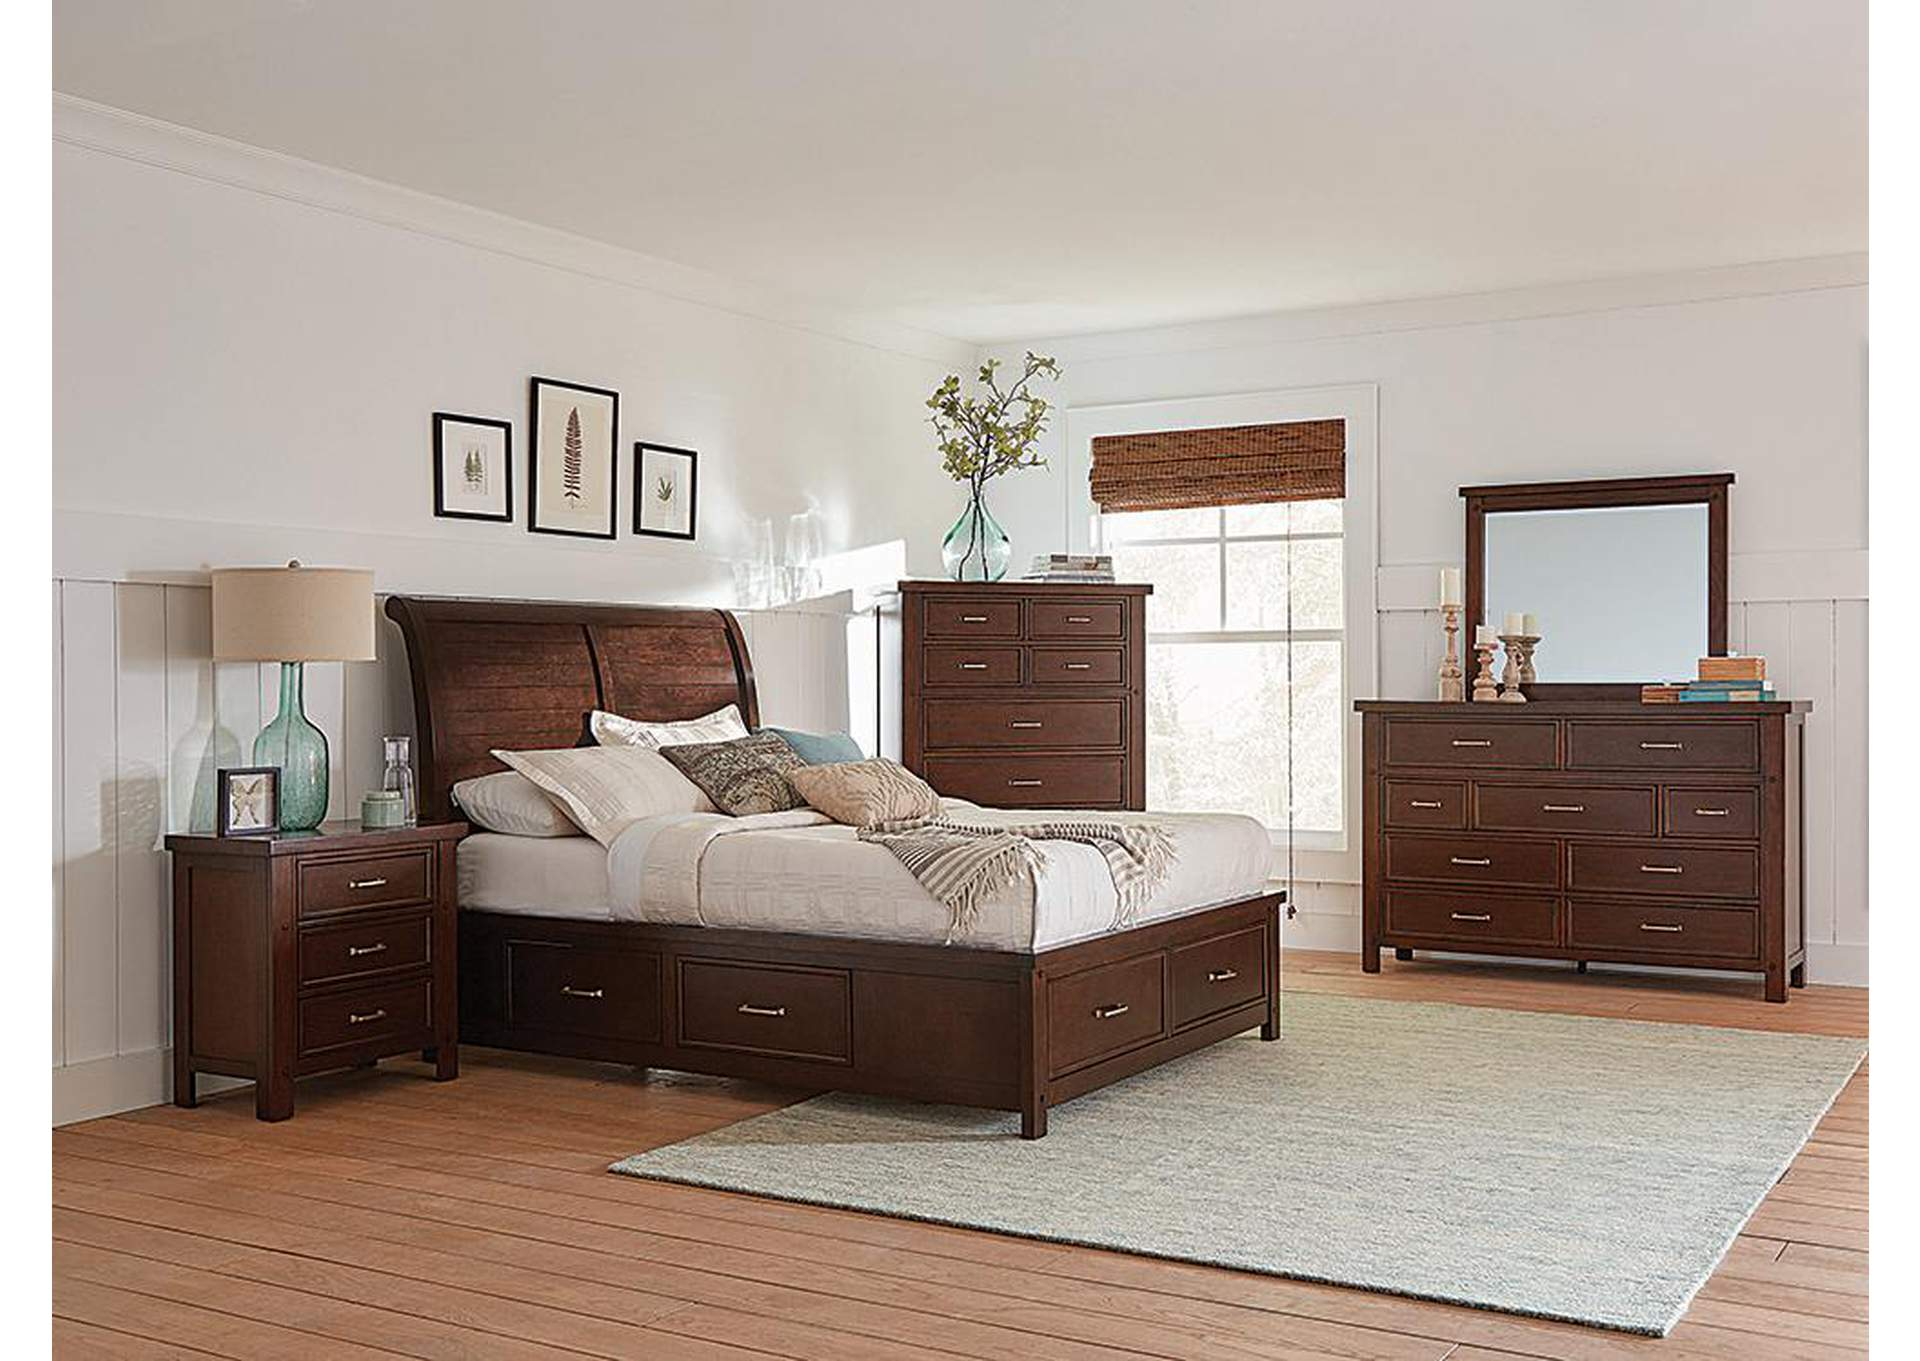 Cedar Eastern King Bed,Coaster Furniture